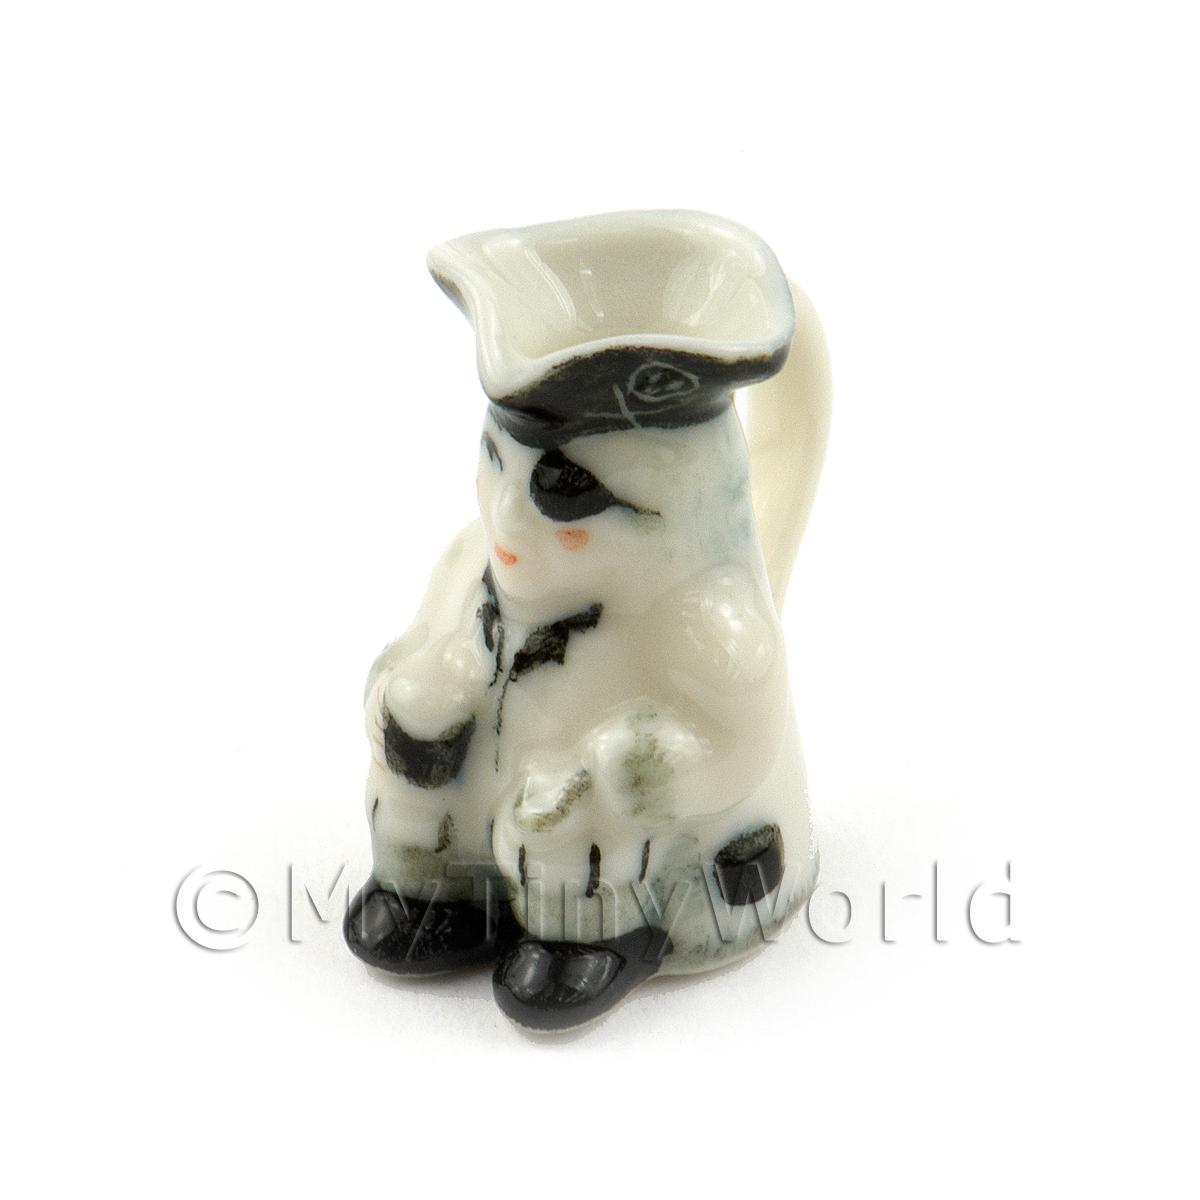 Dolls House Miniature Handmade White Ceramic Toby Jug